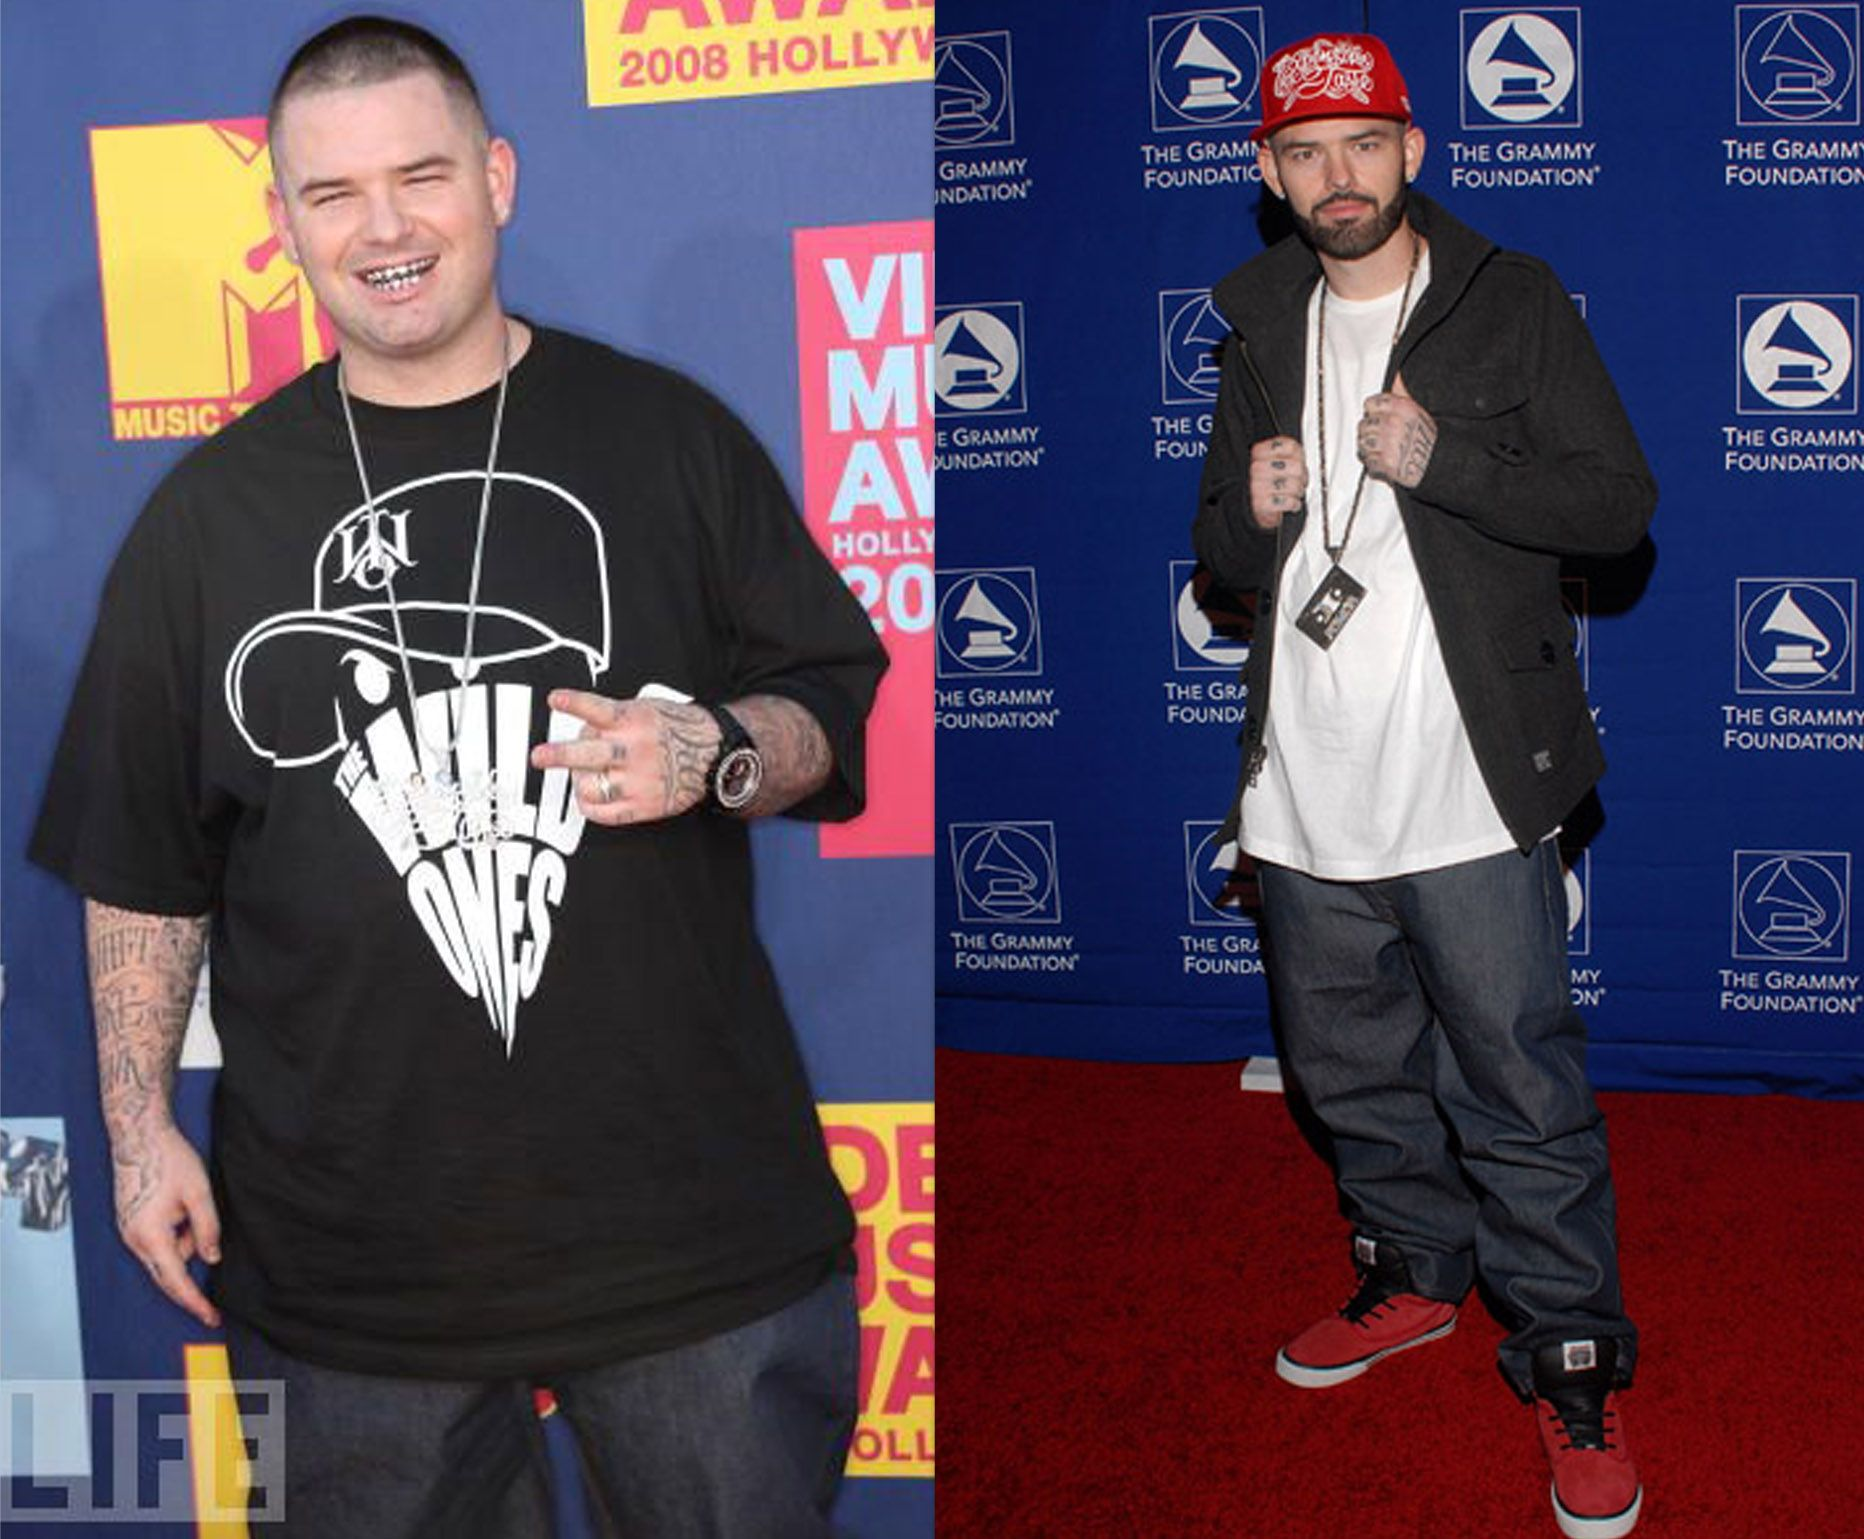 pin on weight loss equipment on paul wall id=78022